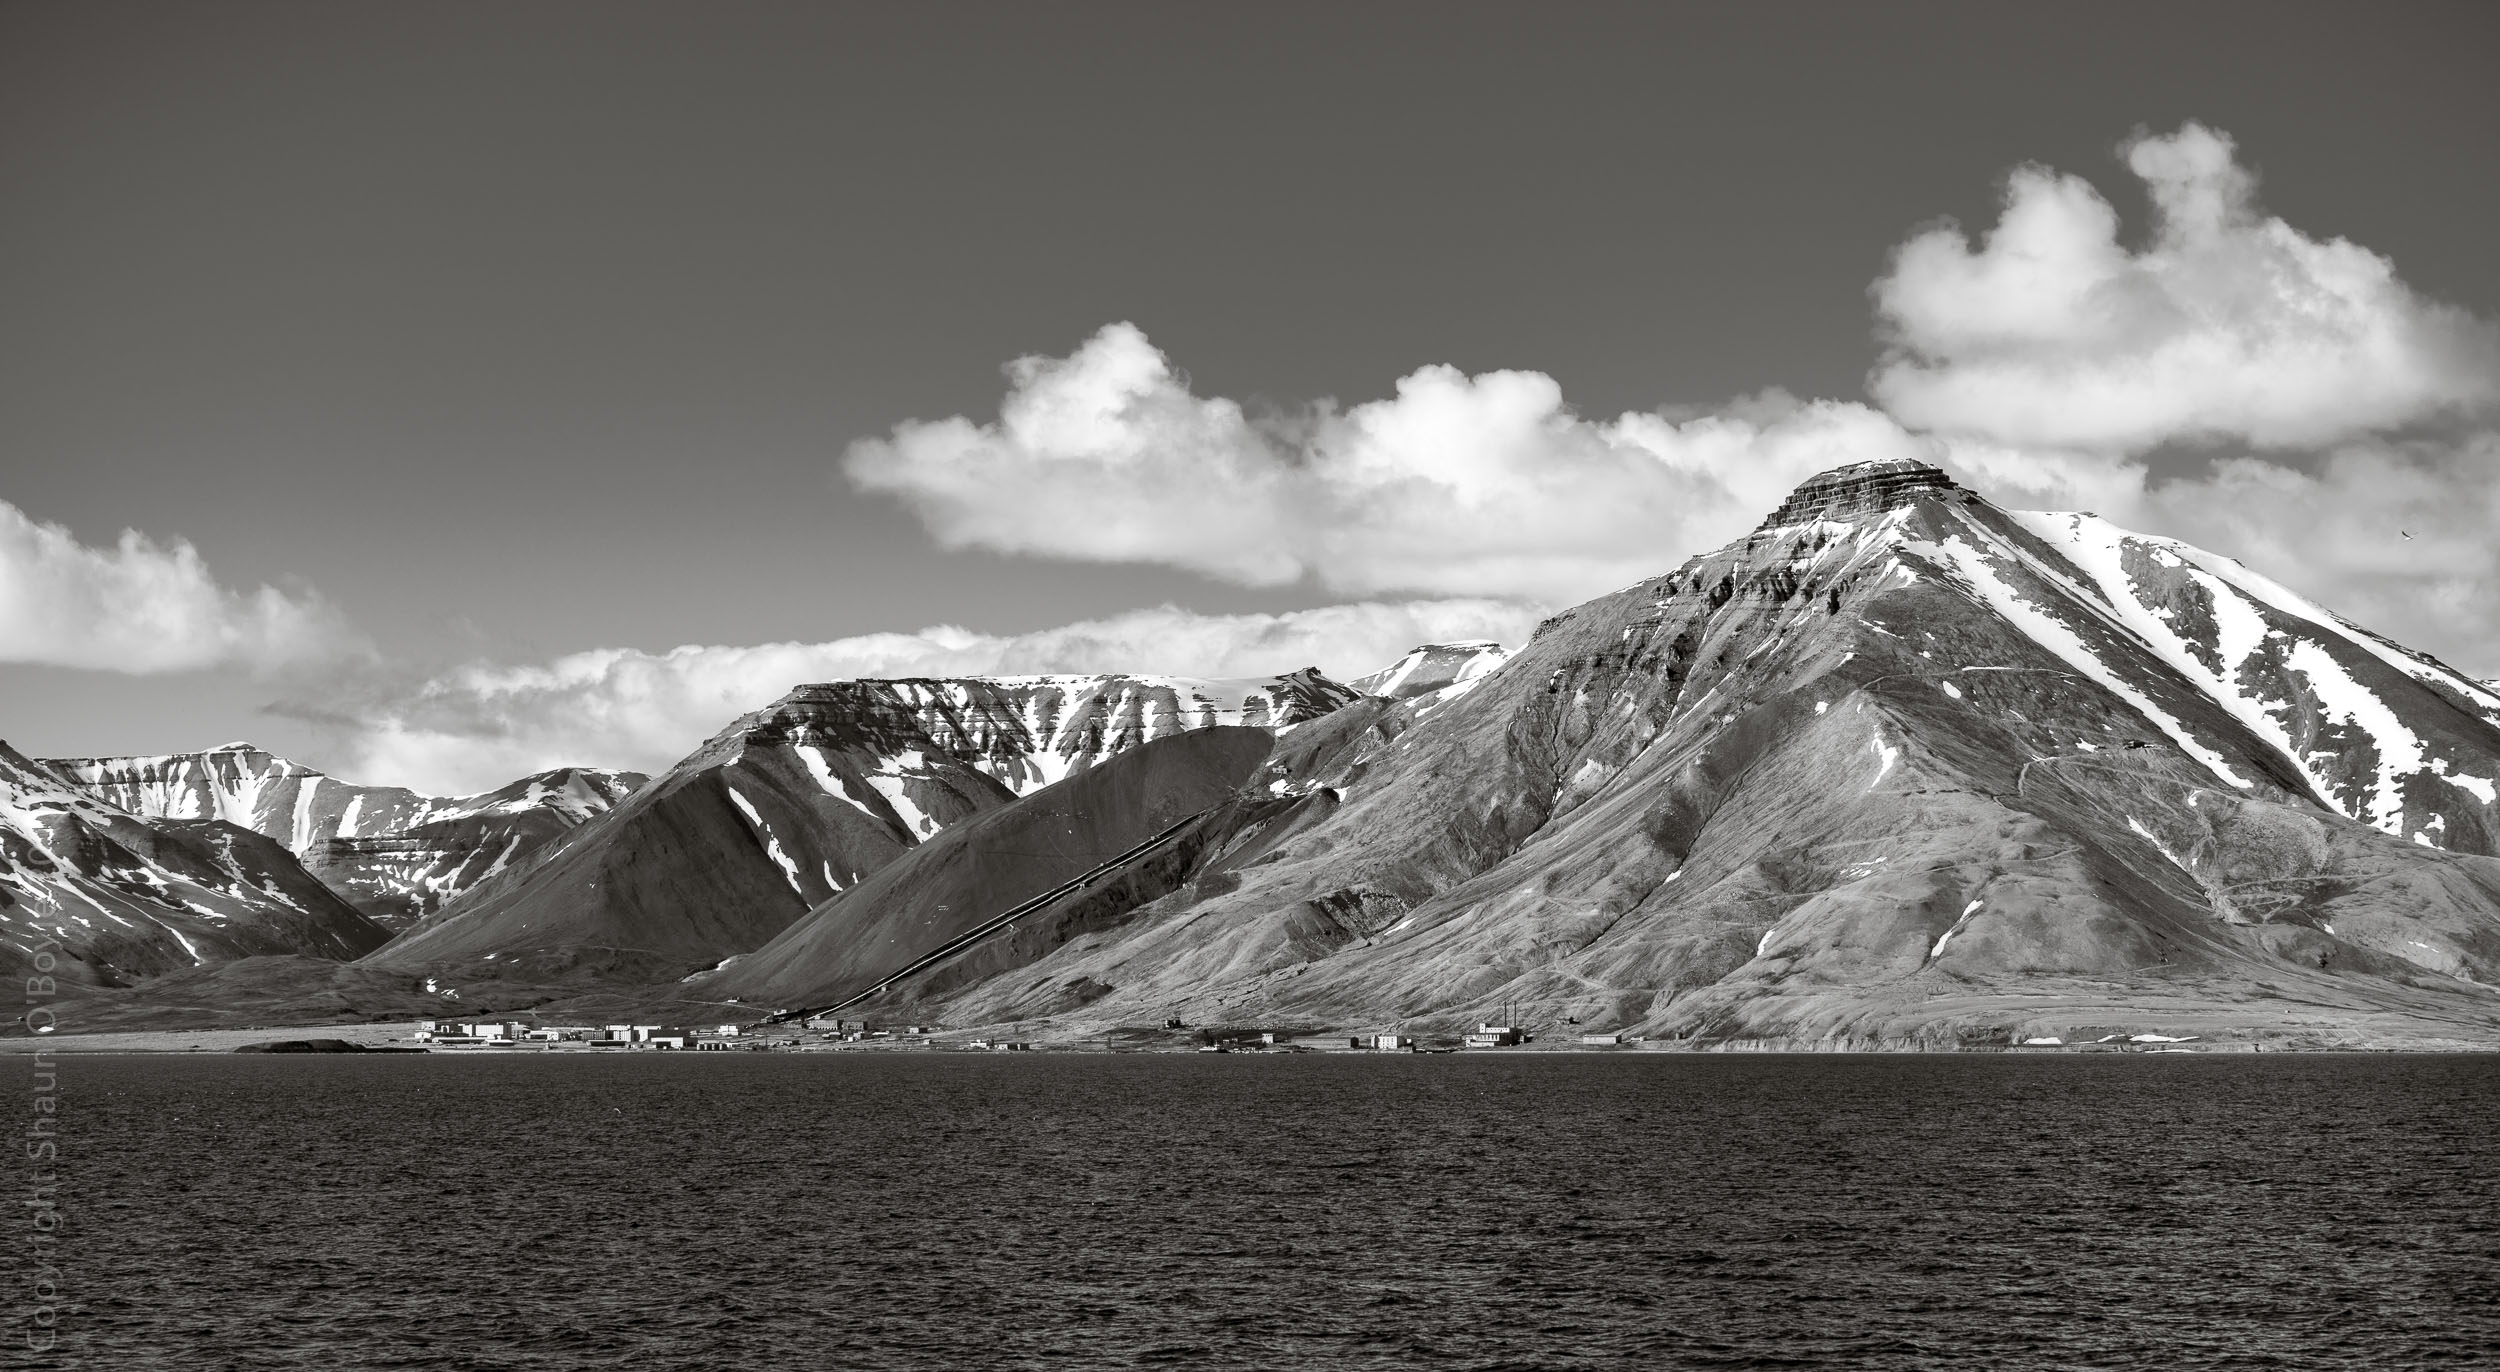 Pyramiden Mountain and the Russian Coal mining settlement of Pyramiden named after the mountain.